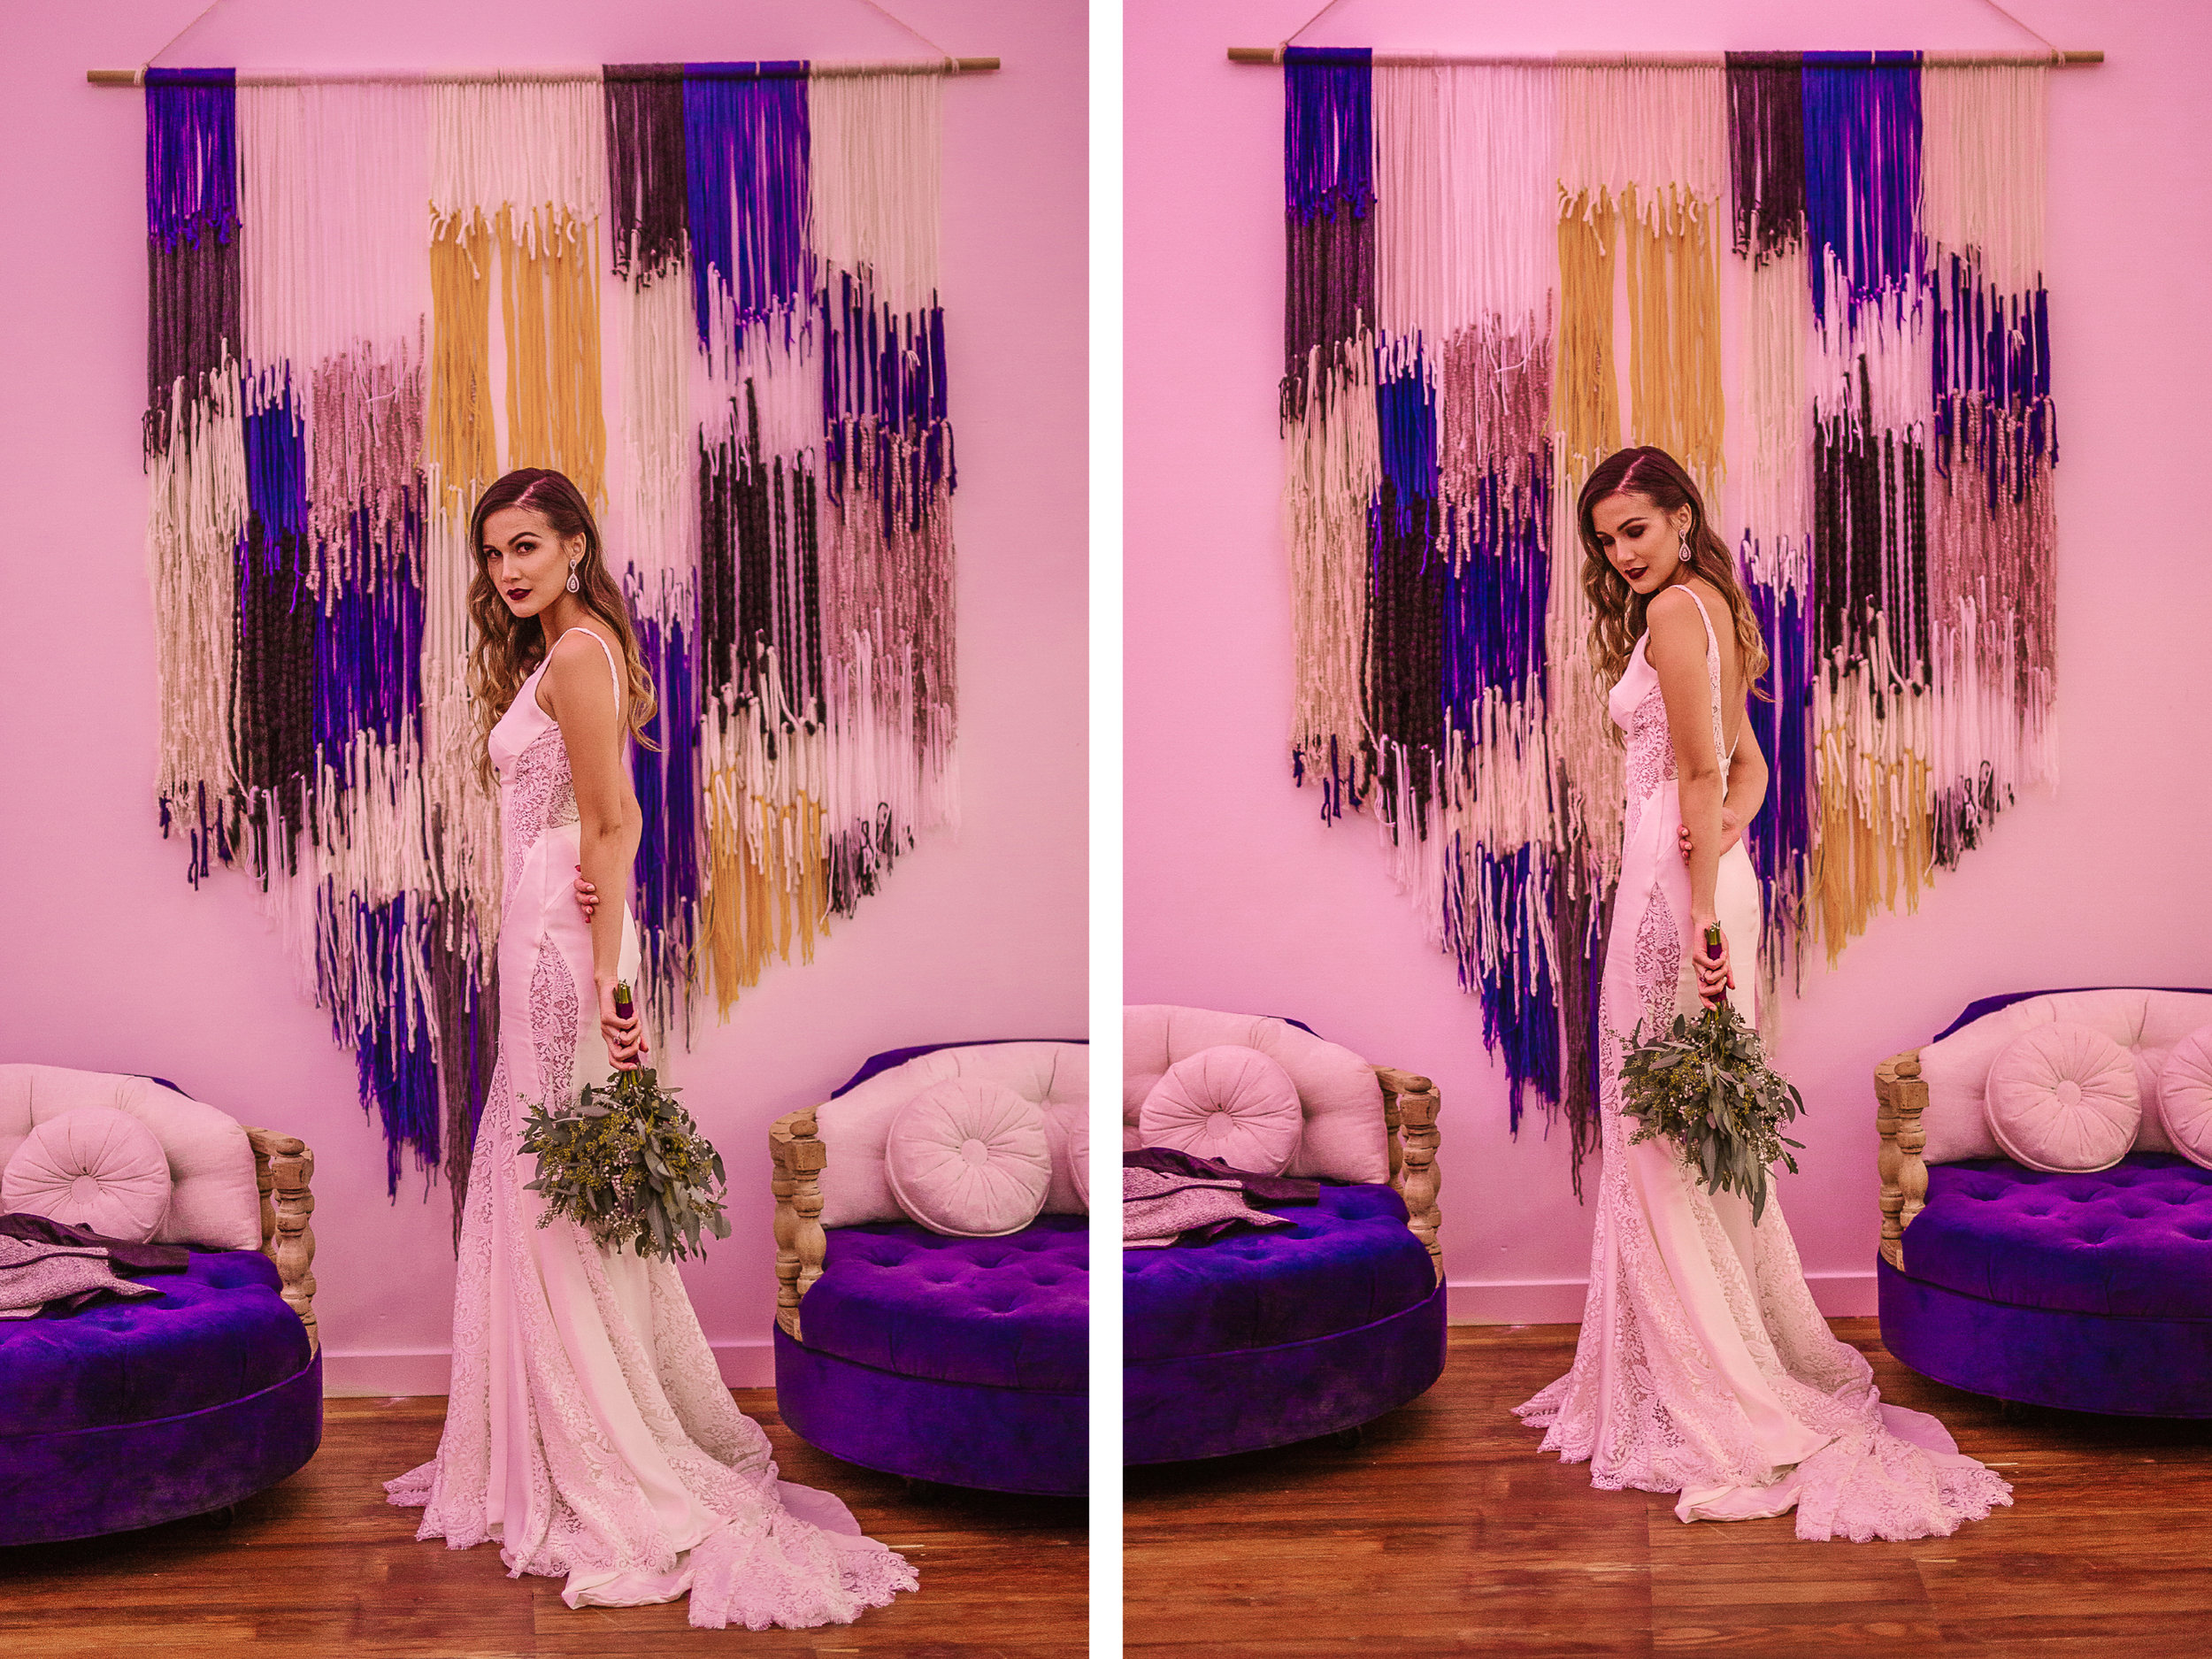 san diego wedding   photographer   collage of woman in wedding dress holding bouquet between   purple chairs